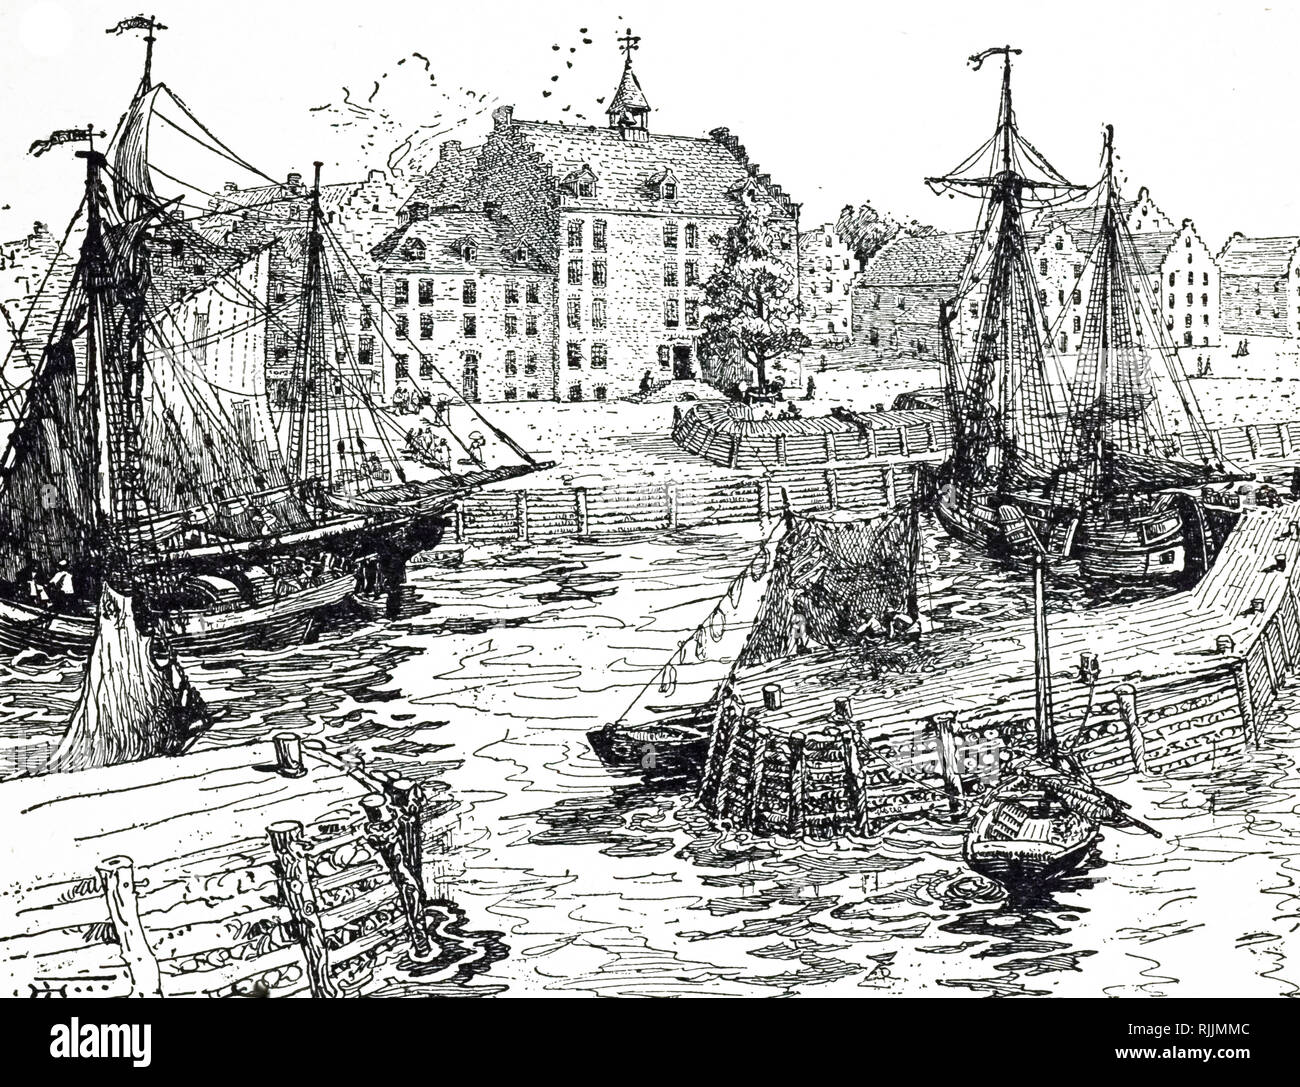 An engraving depicting New York City Hall and Docks. Dated 17th century - Stock Image